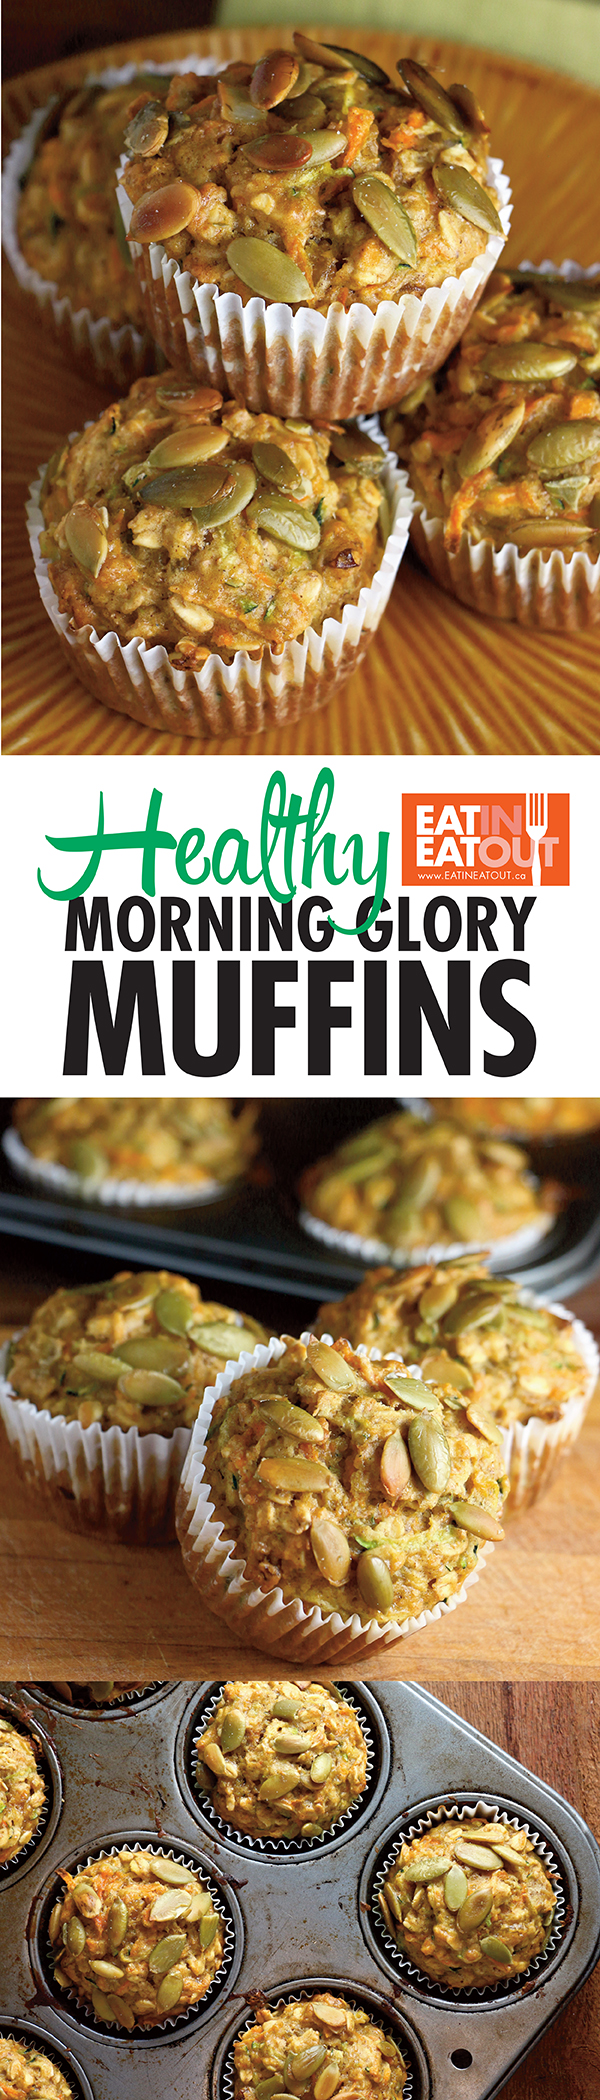 Healthy And Great Tasting Try These Healthy Morning Glory